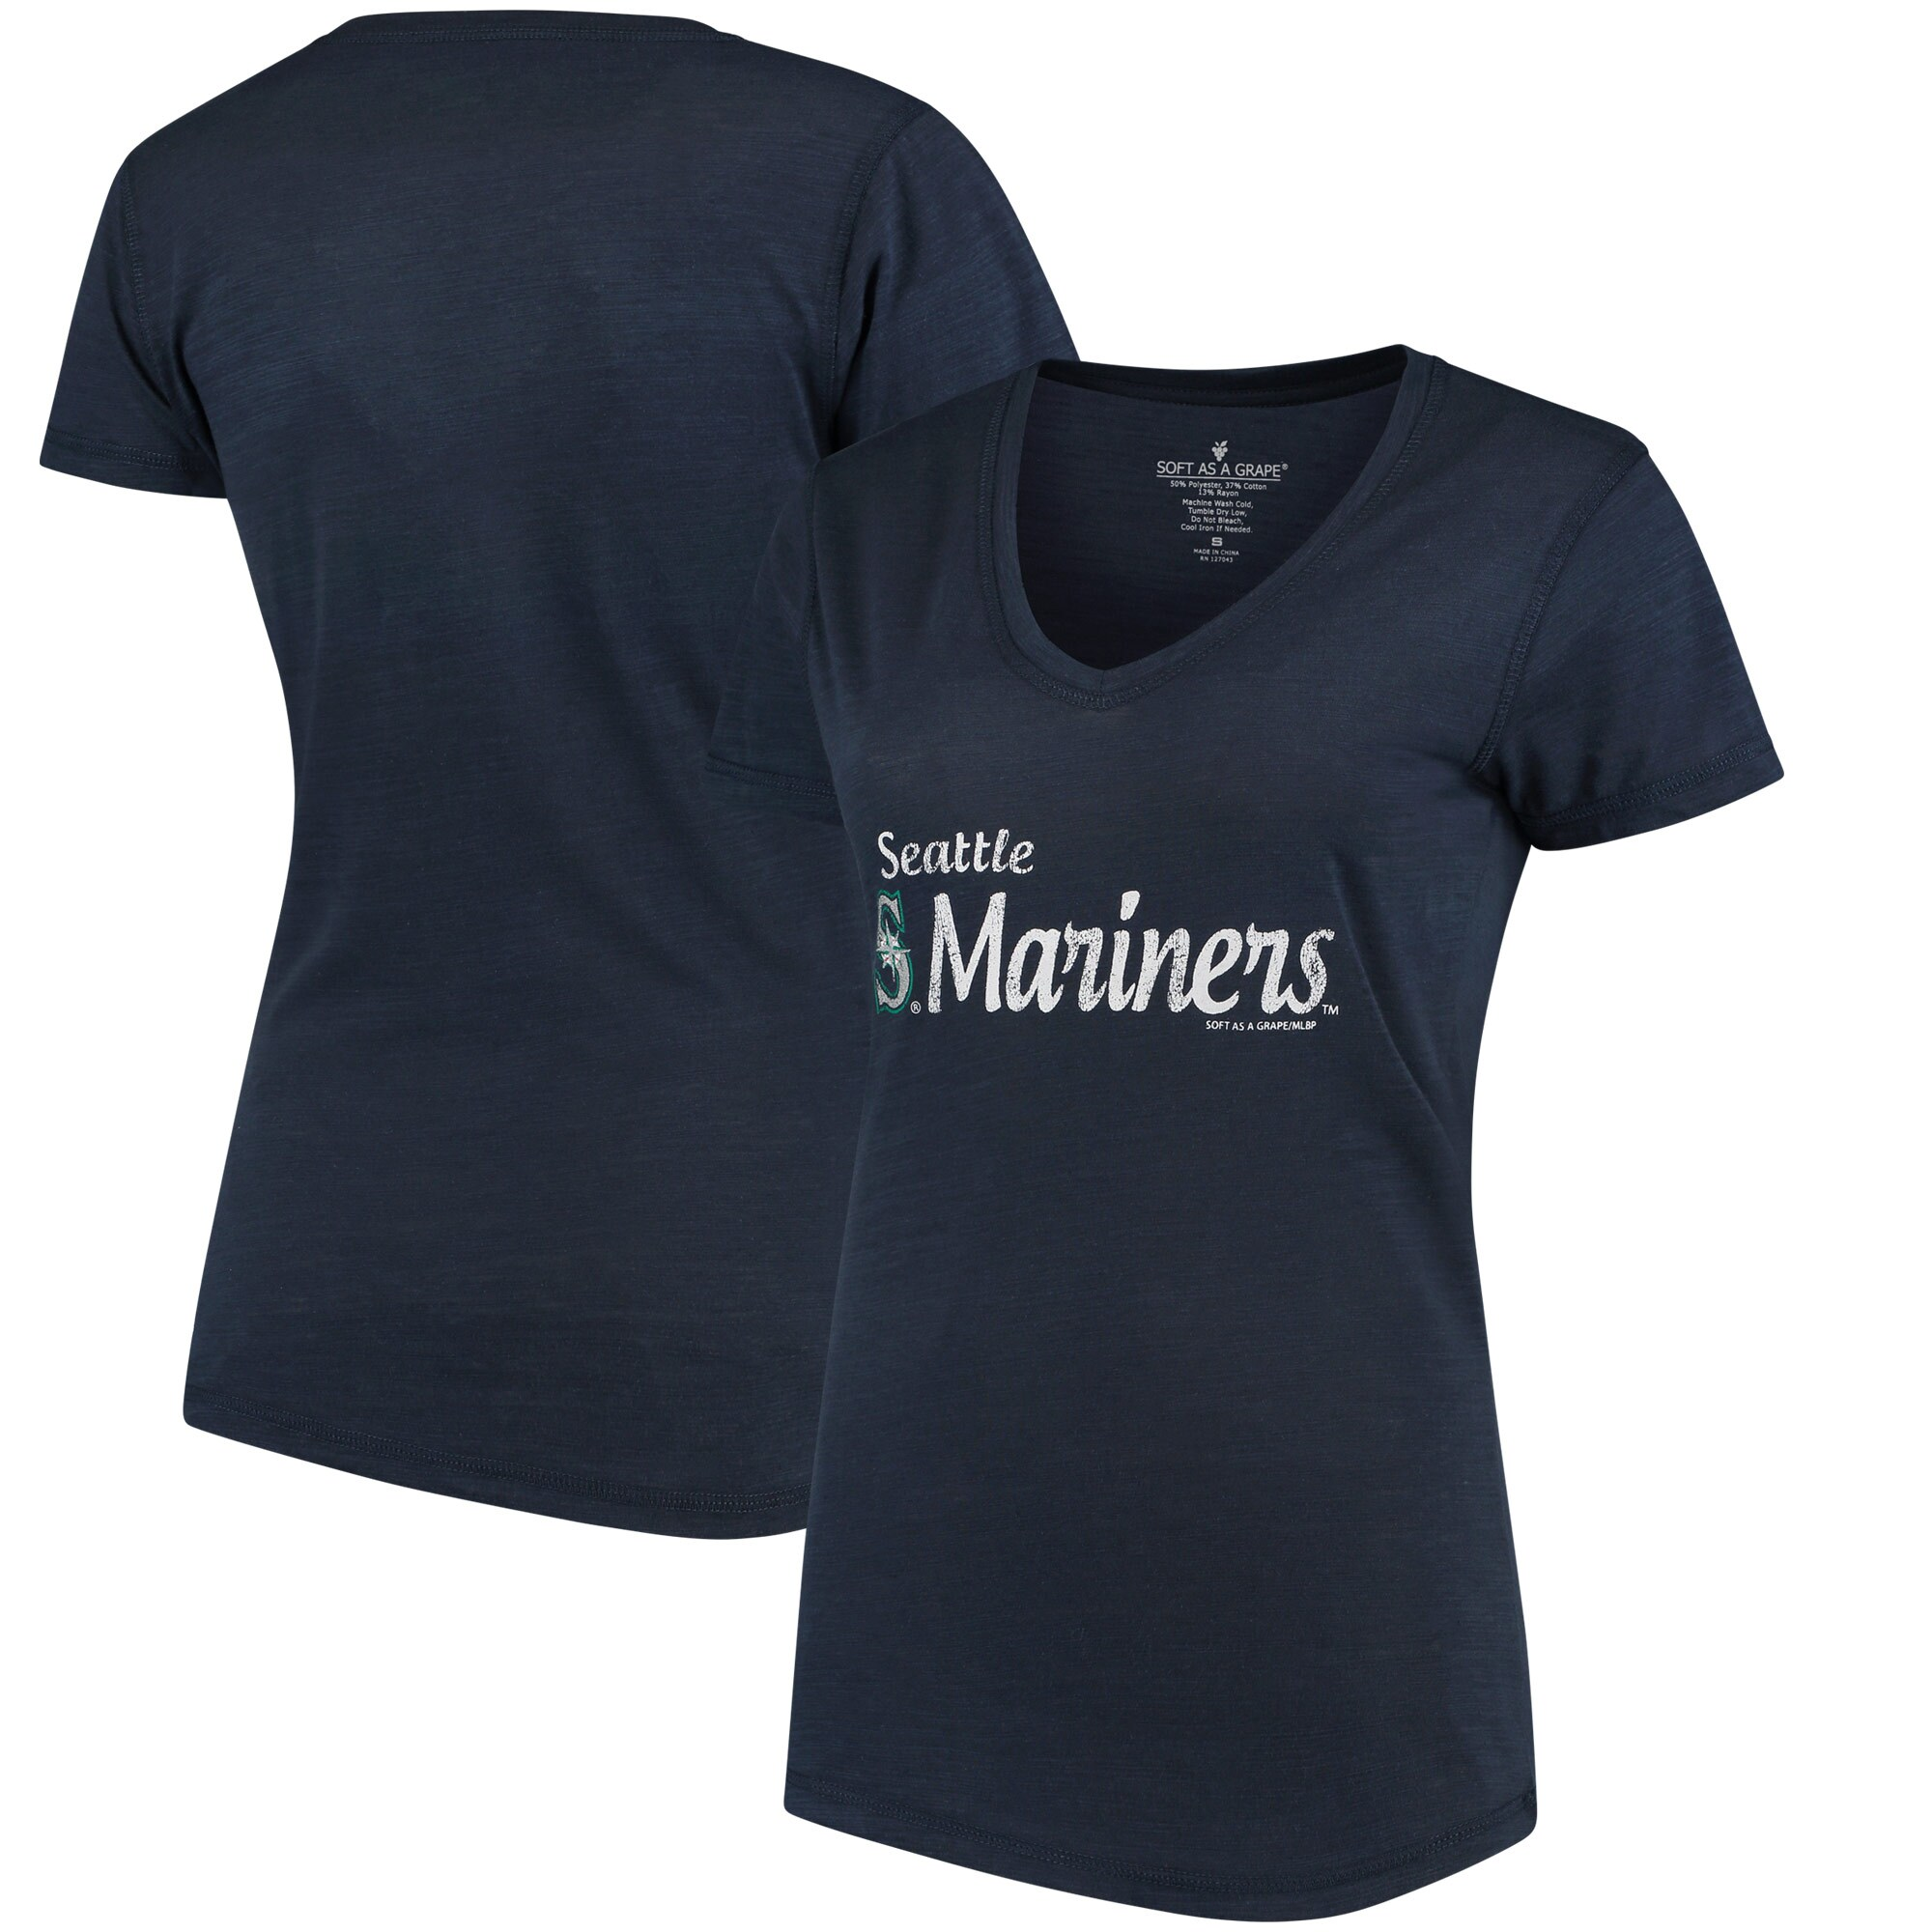 Seattle Mariners Soft As A Grape Women's Double Steal Tri-Blend V-Neck T-Shirt - Navy